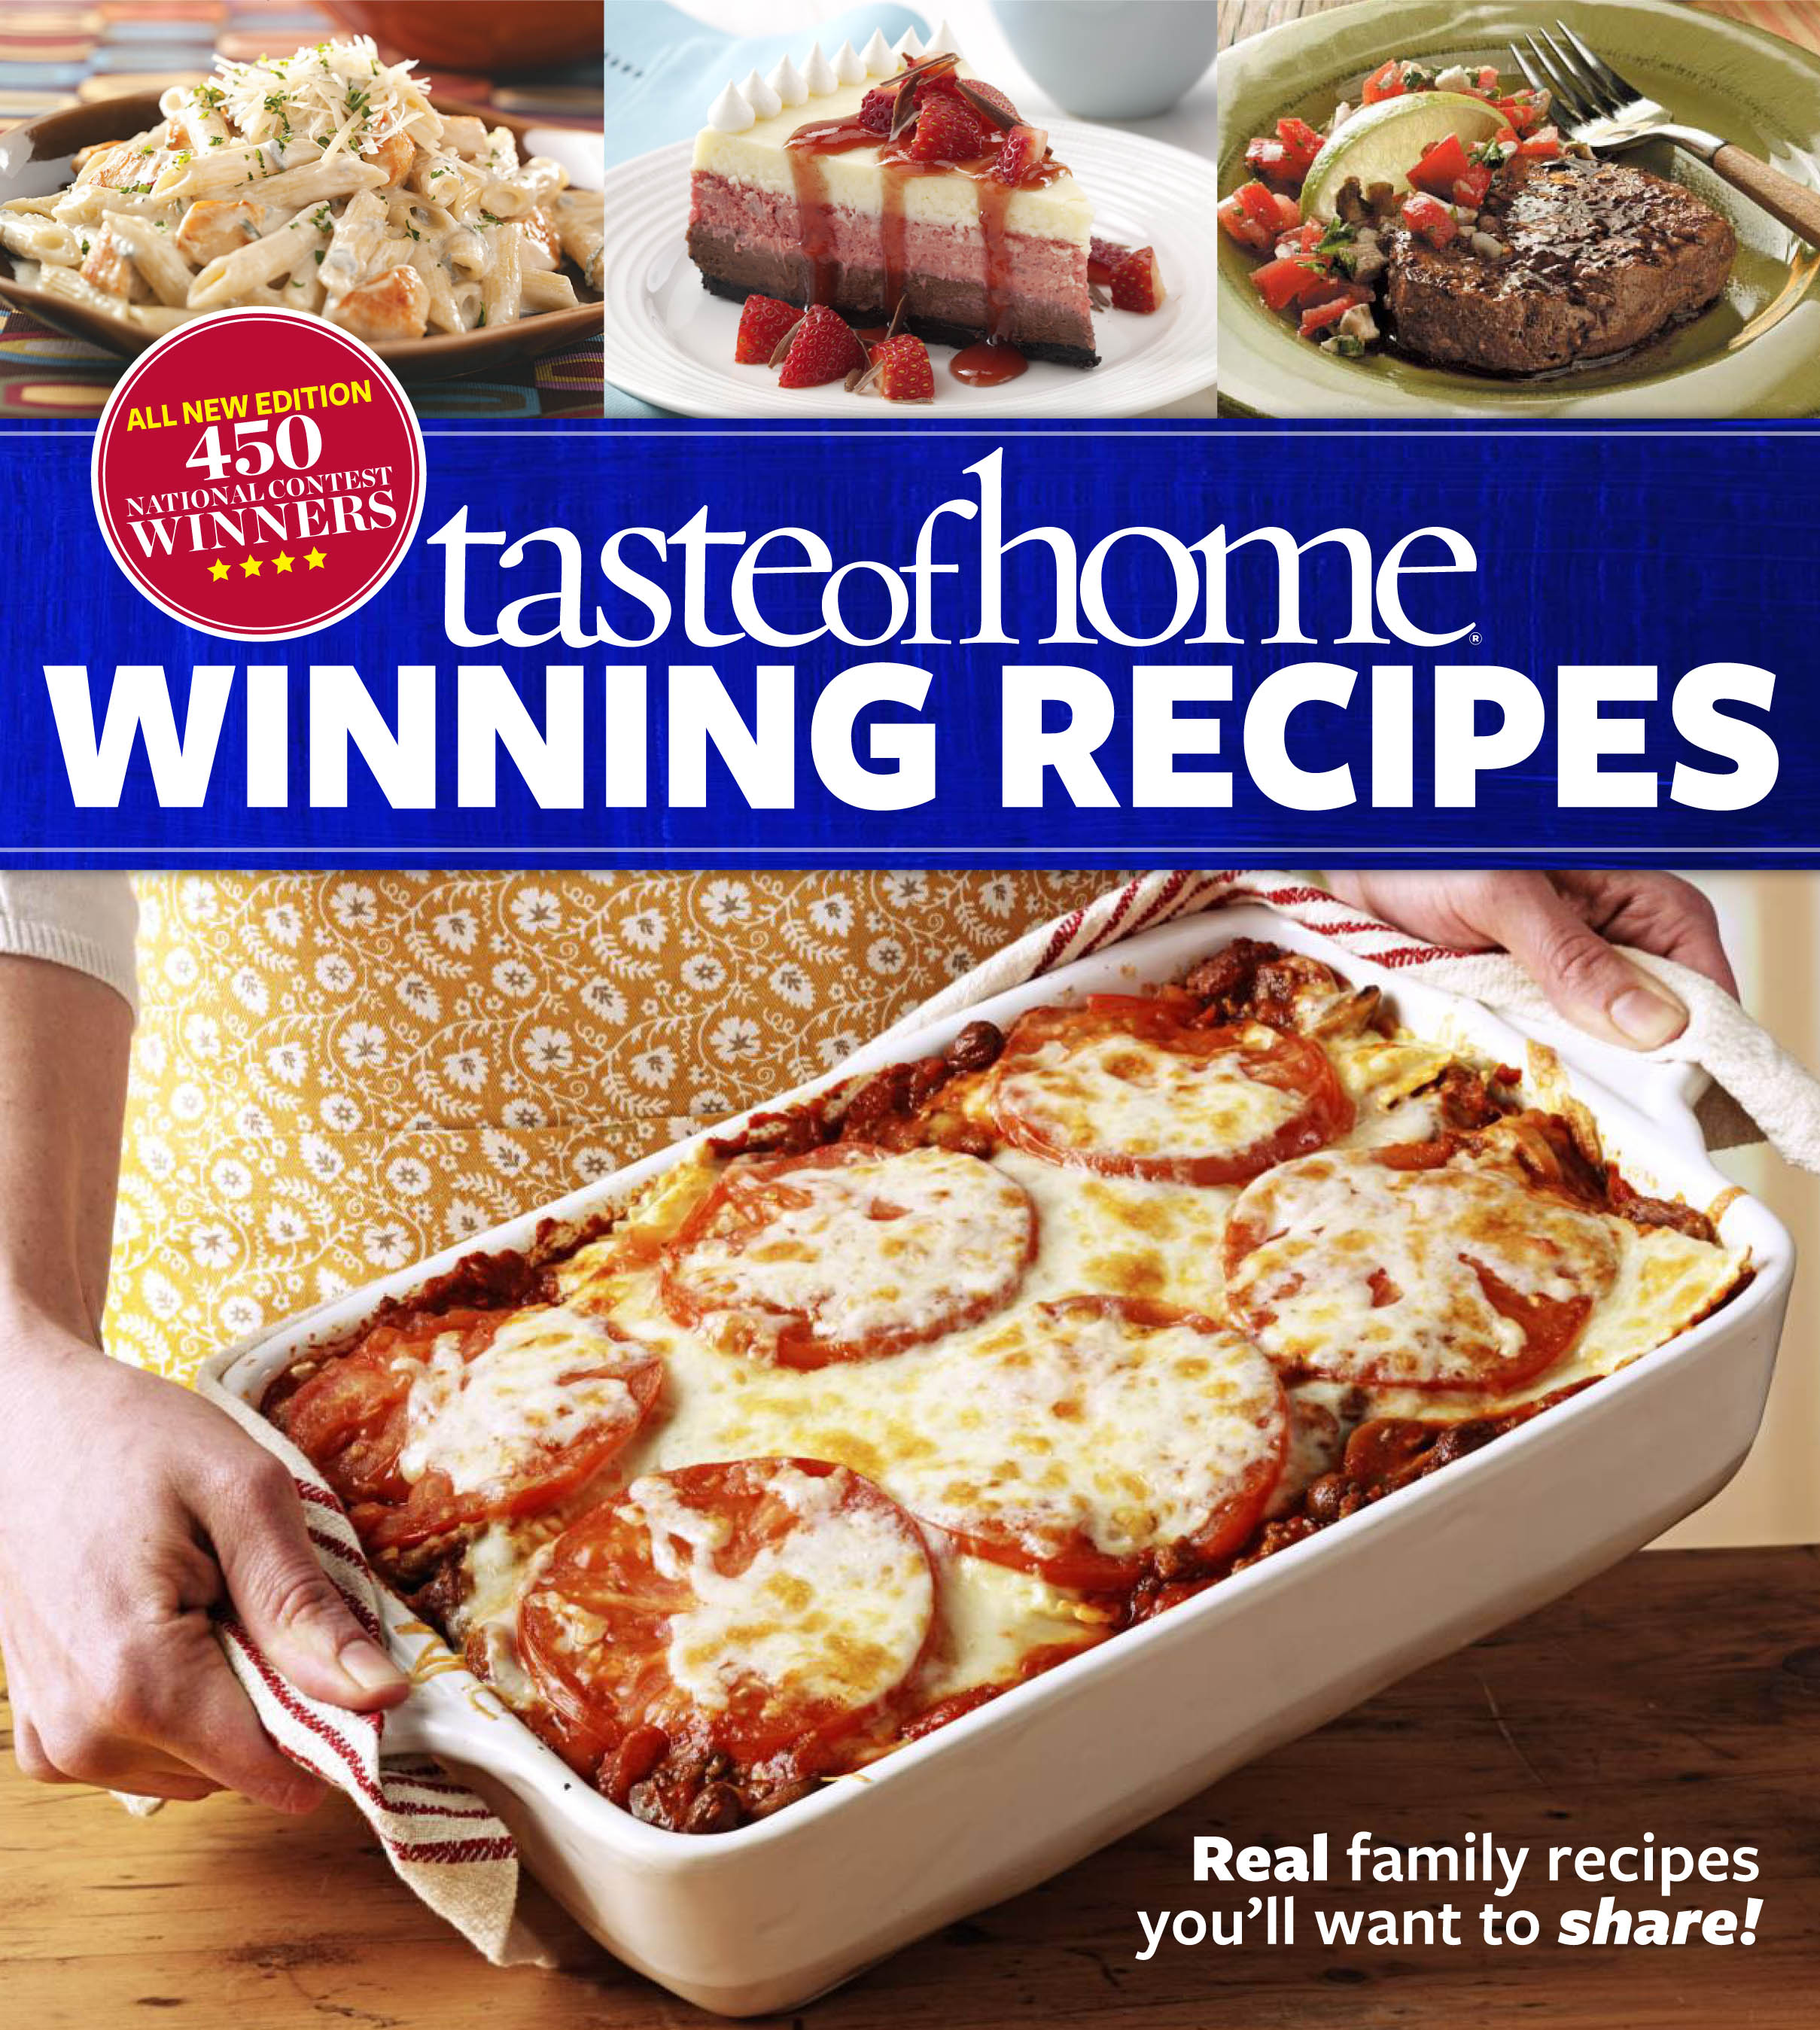 Taste of home winning recipes all new edition book by taste of real family recipes youll want to share new 417 national contest winners forumfinder Gallery